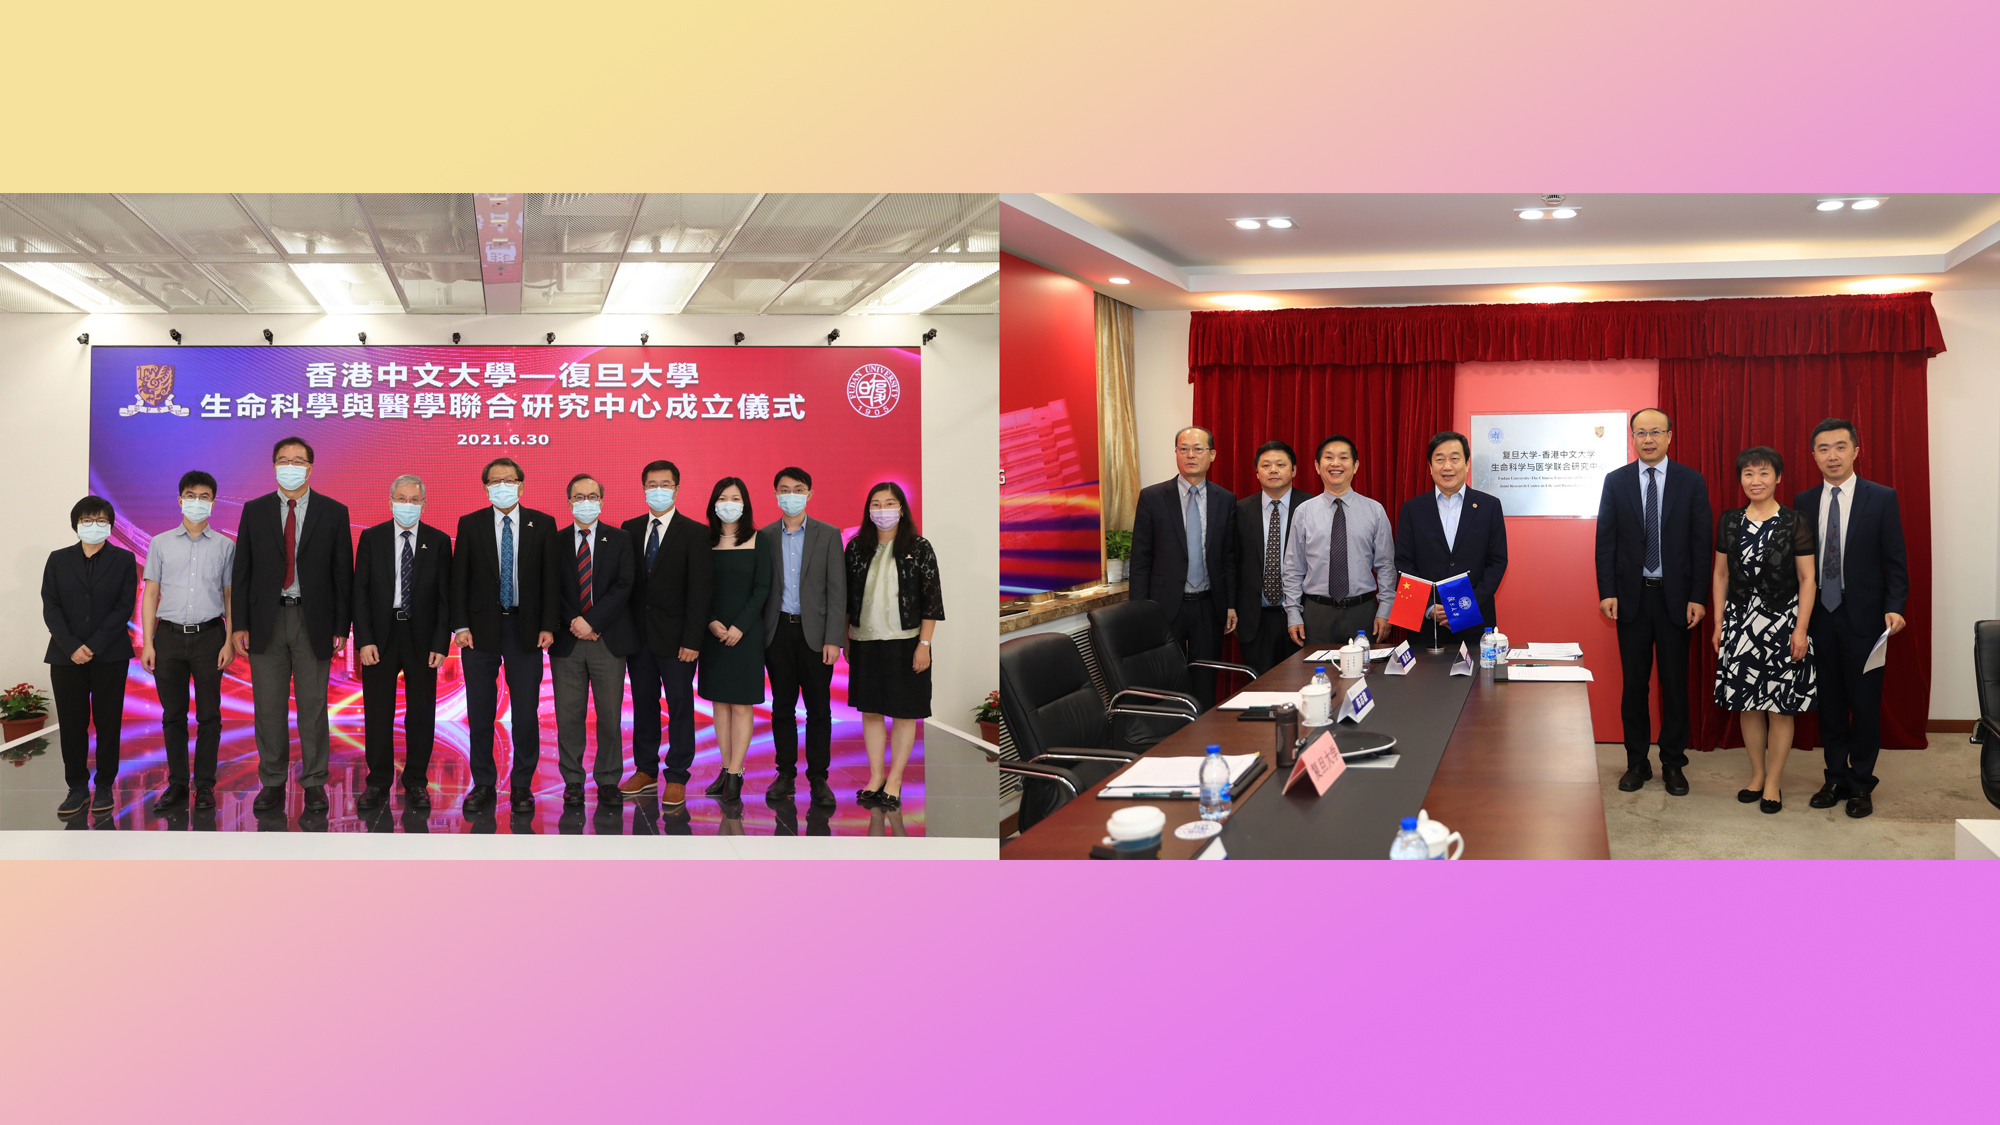 Inauguration of the CUHK and Fudan University Joint Research Centre in Life and Biomedical Sciences